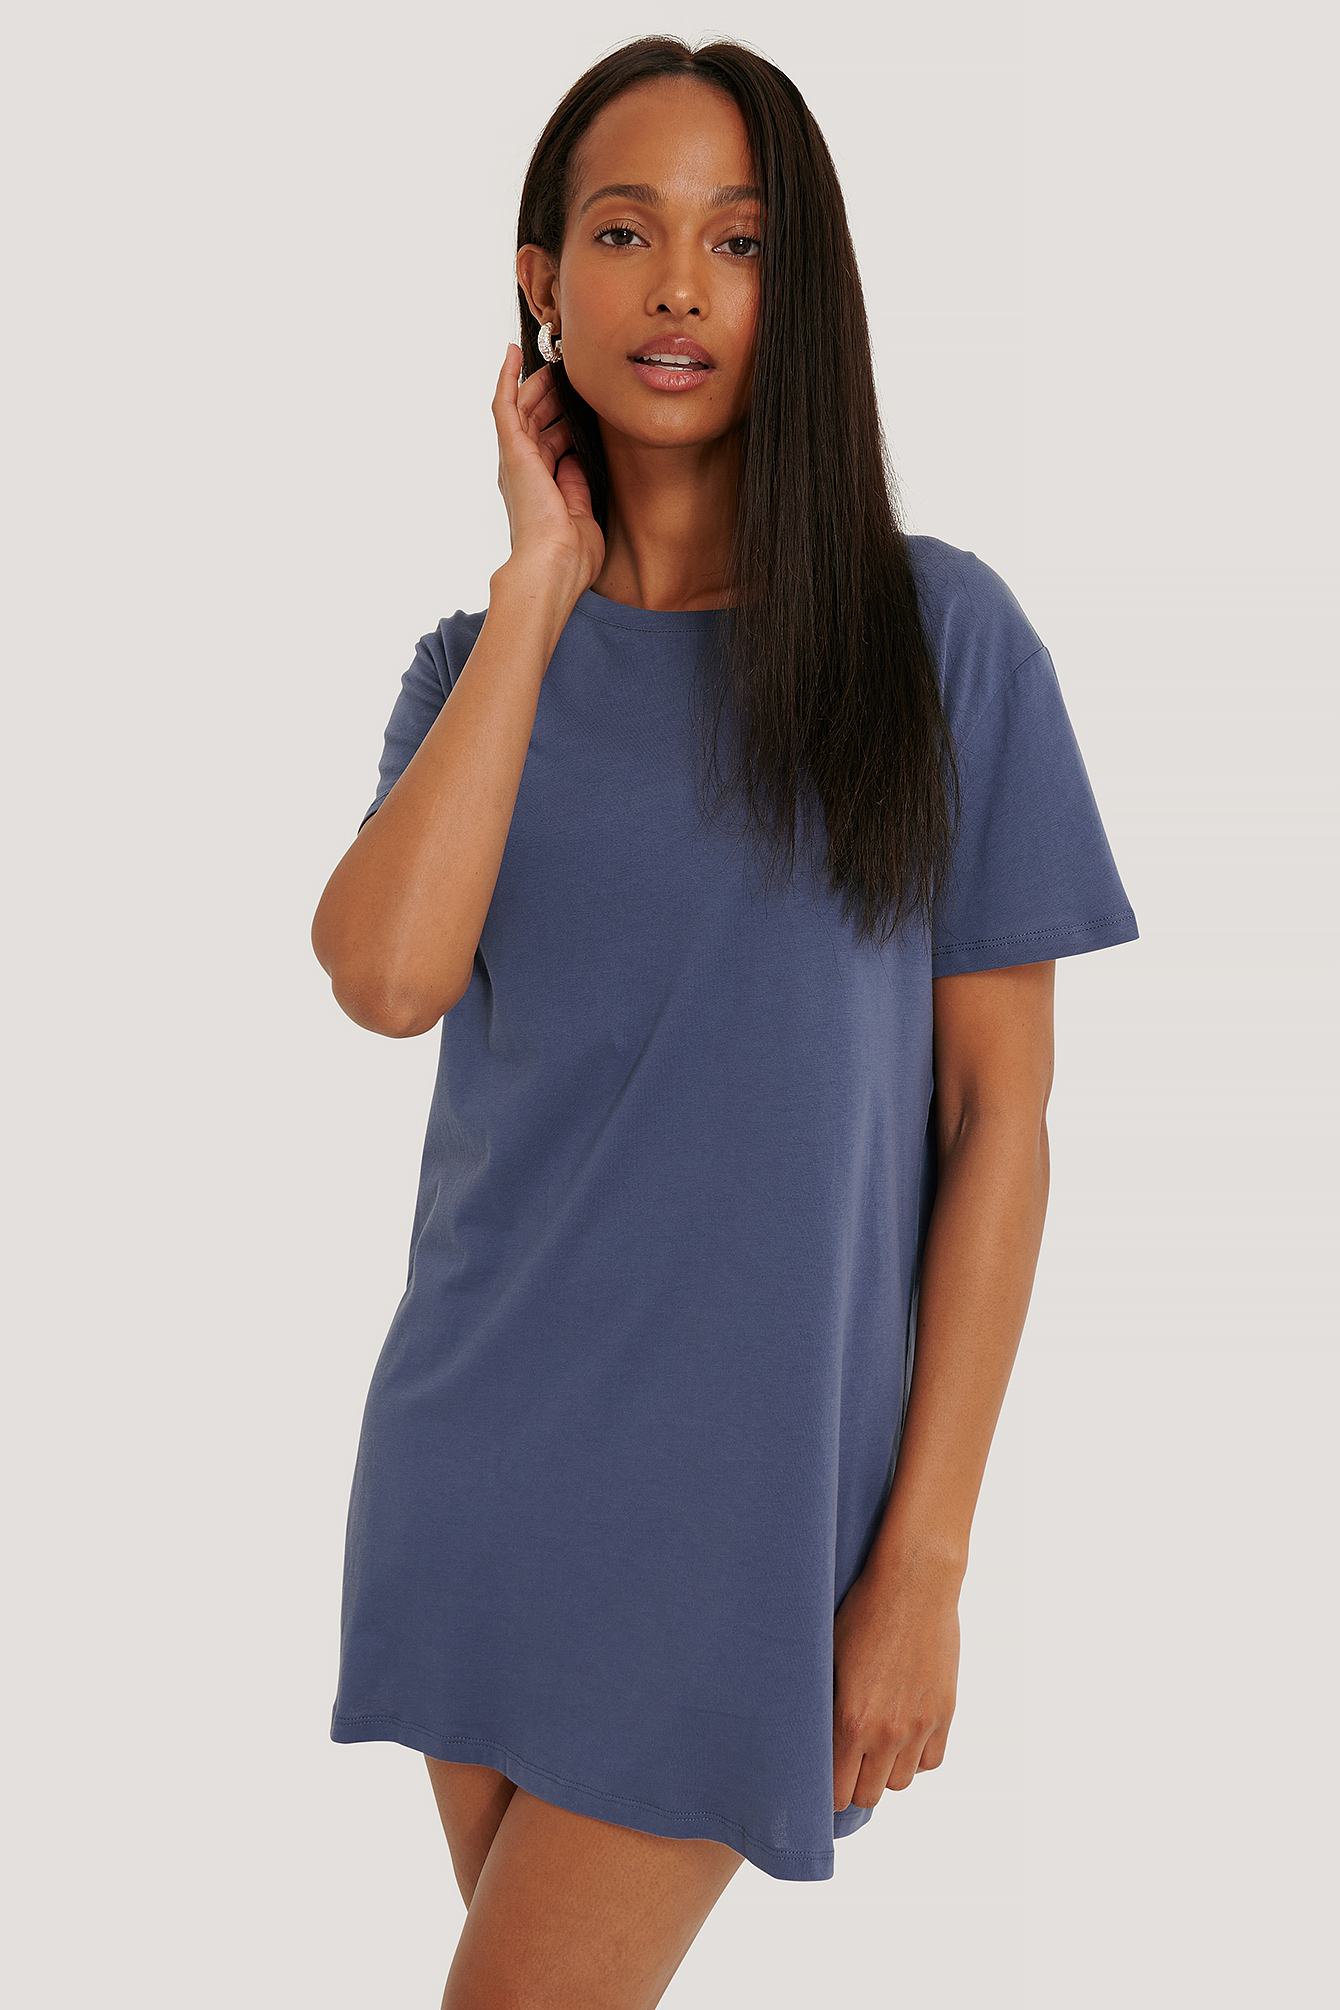 Dusty Midnight Blue Robe T-Shirt